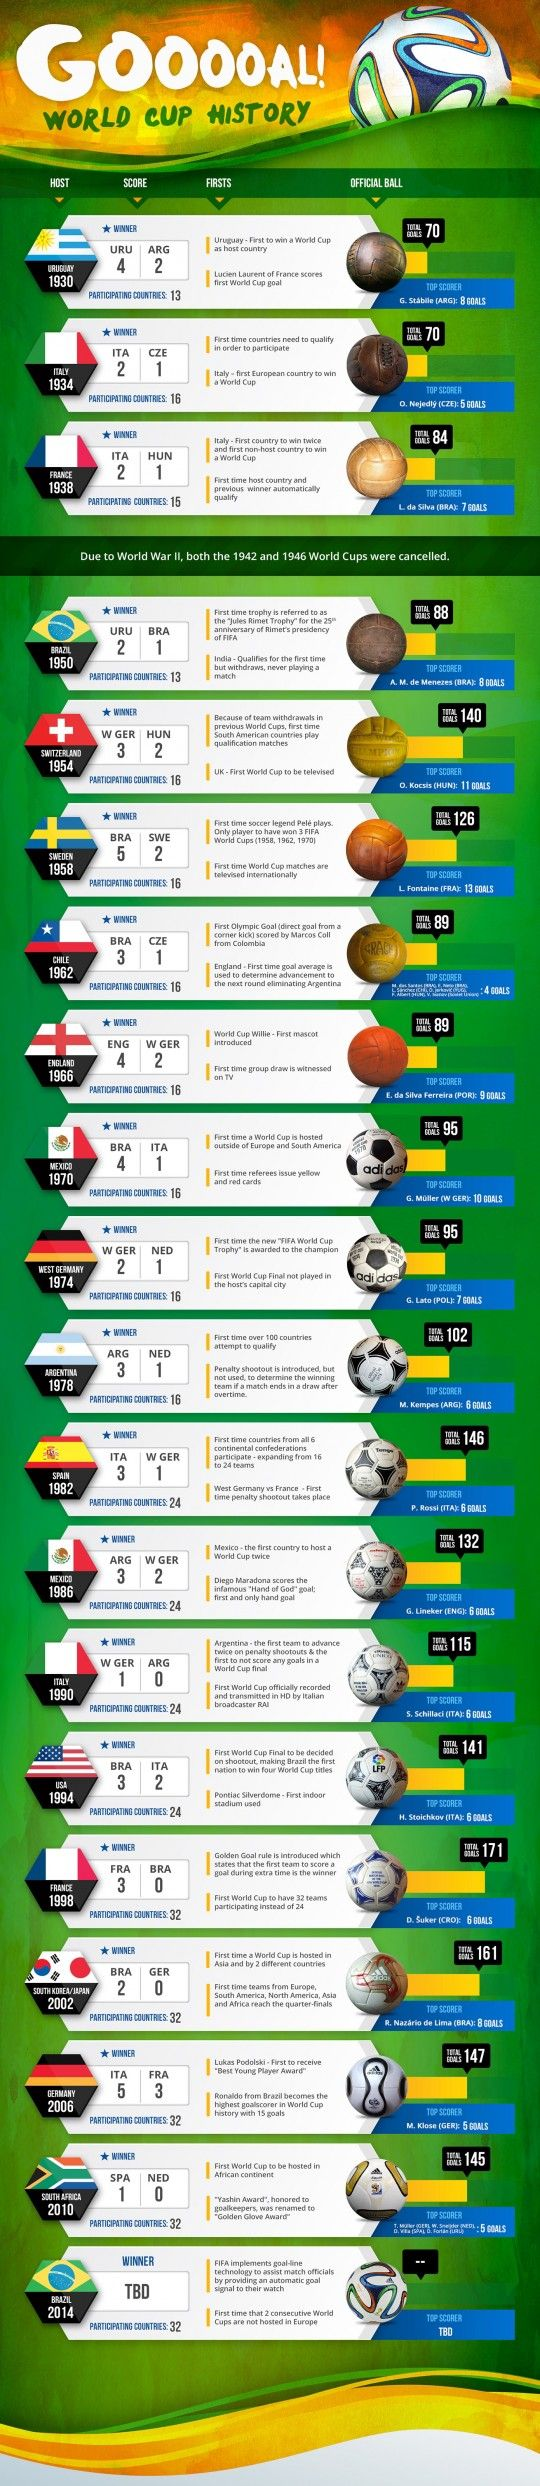 World Cup History Infographic and a Zillion New World Cup Resources